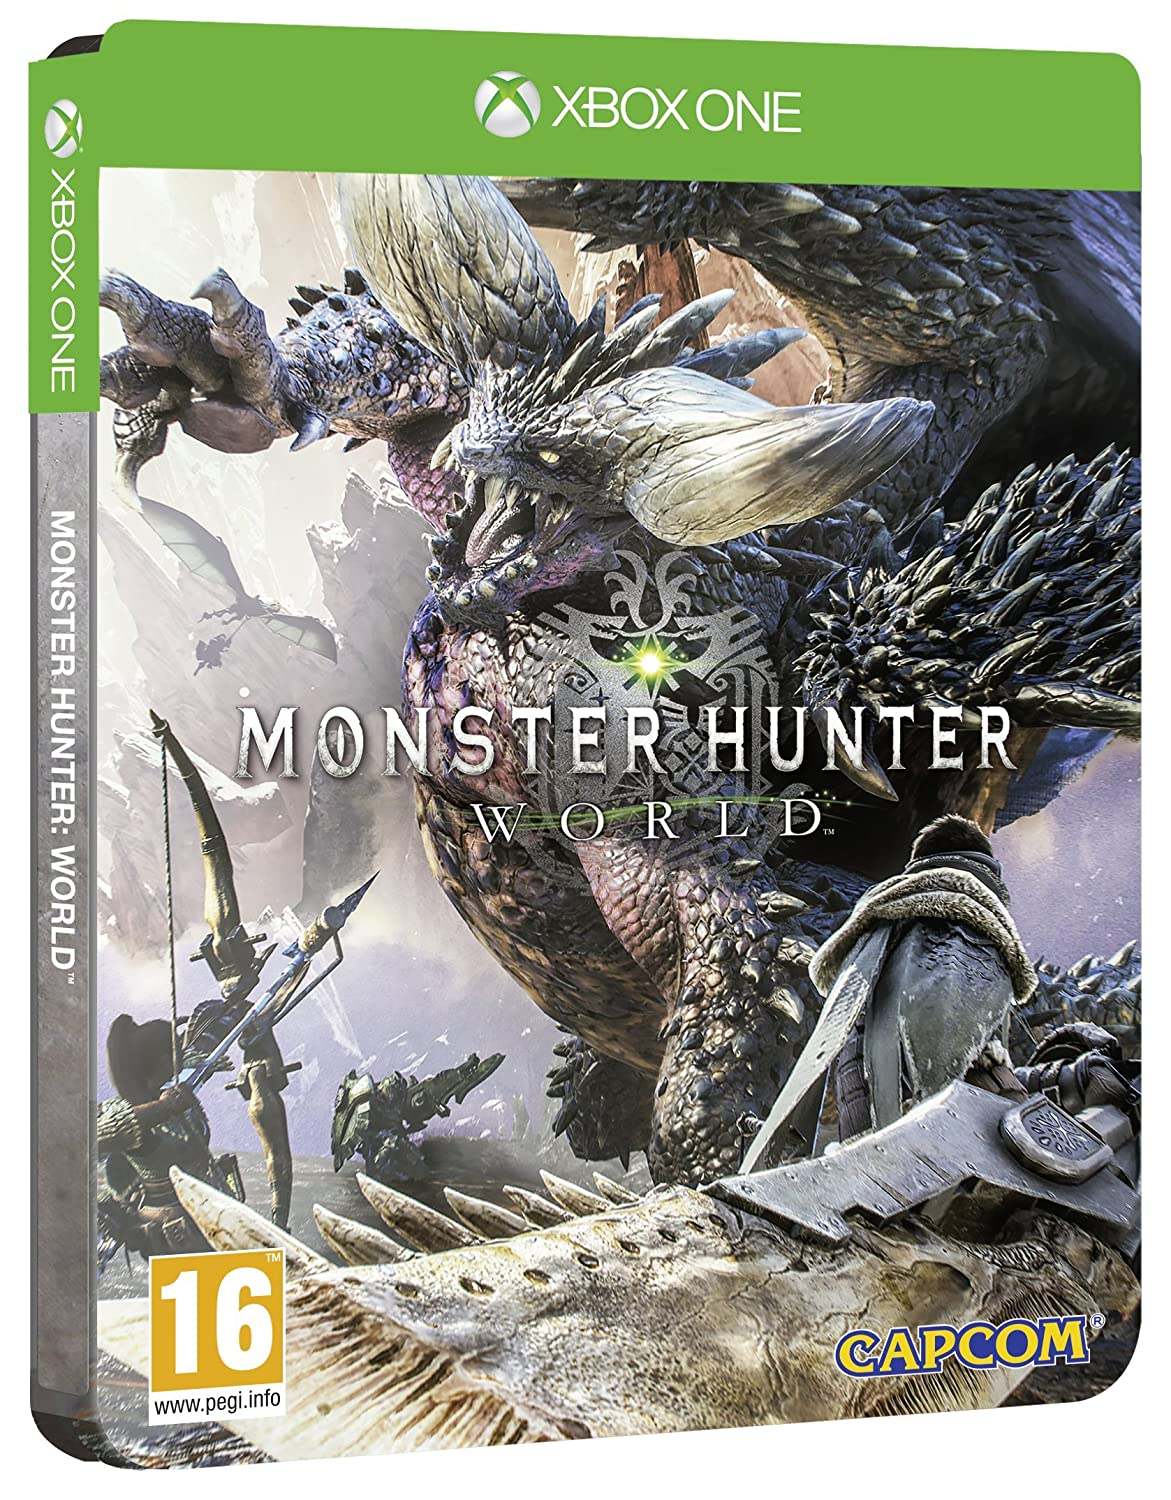 Monster Hunter World Steel Book Amazon.co. Edition Exclusive to Japan Maker Brand Cheap Sale Venue New